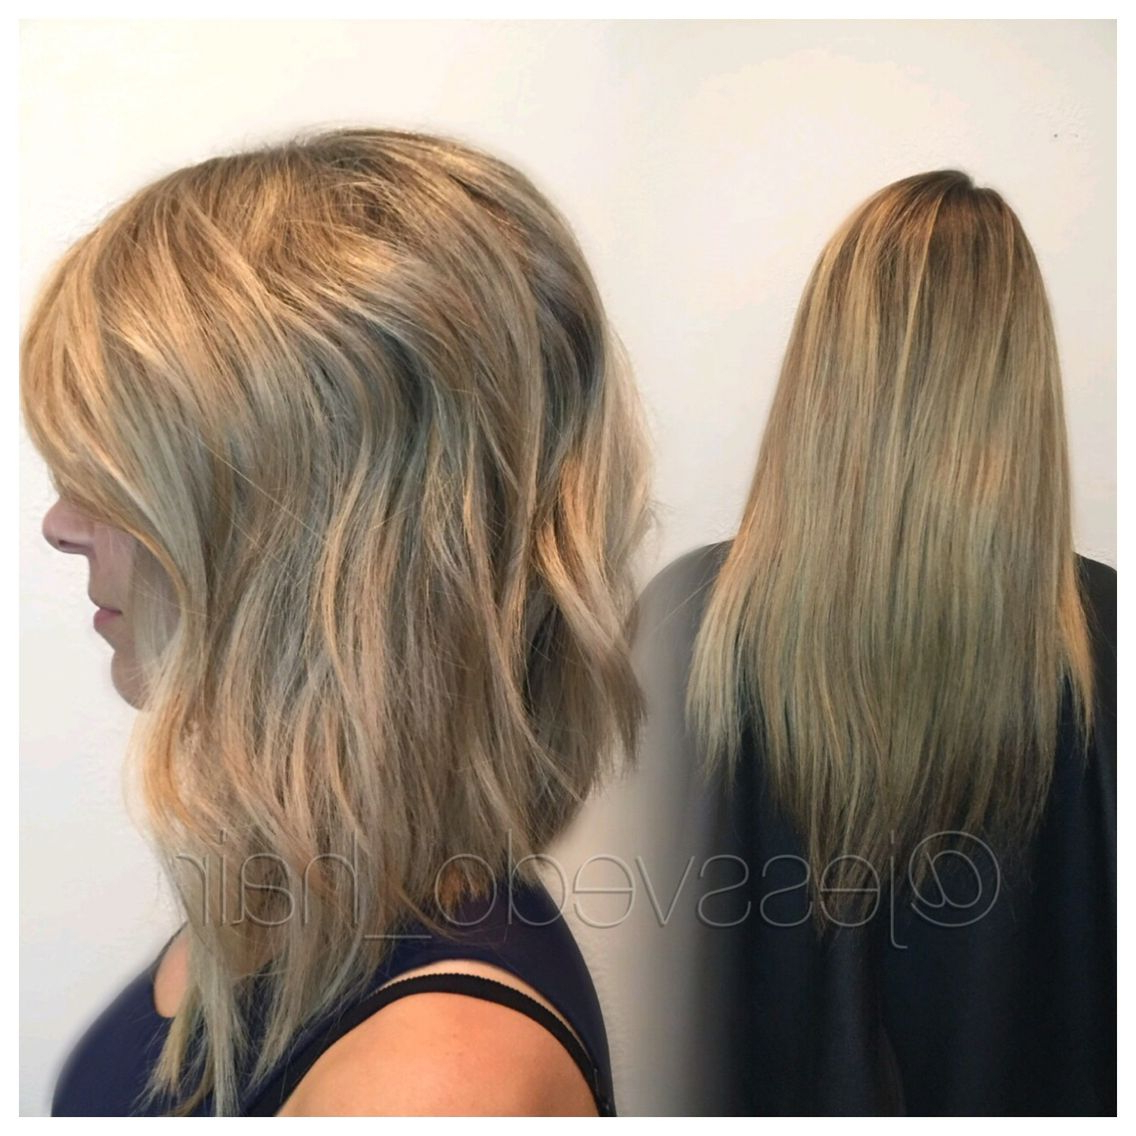 Blonde Textured A Line Bob With Long Layers And A Beach Wave Style In Recent Straight Layered Tresses In A Line Hairstyles (View 7 of 20)